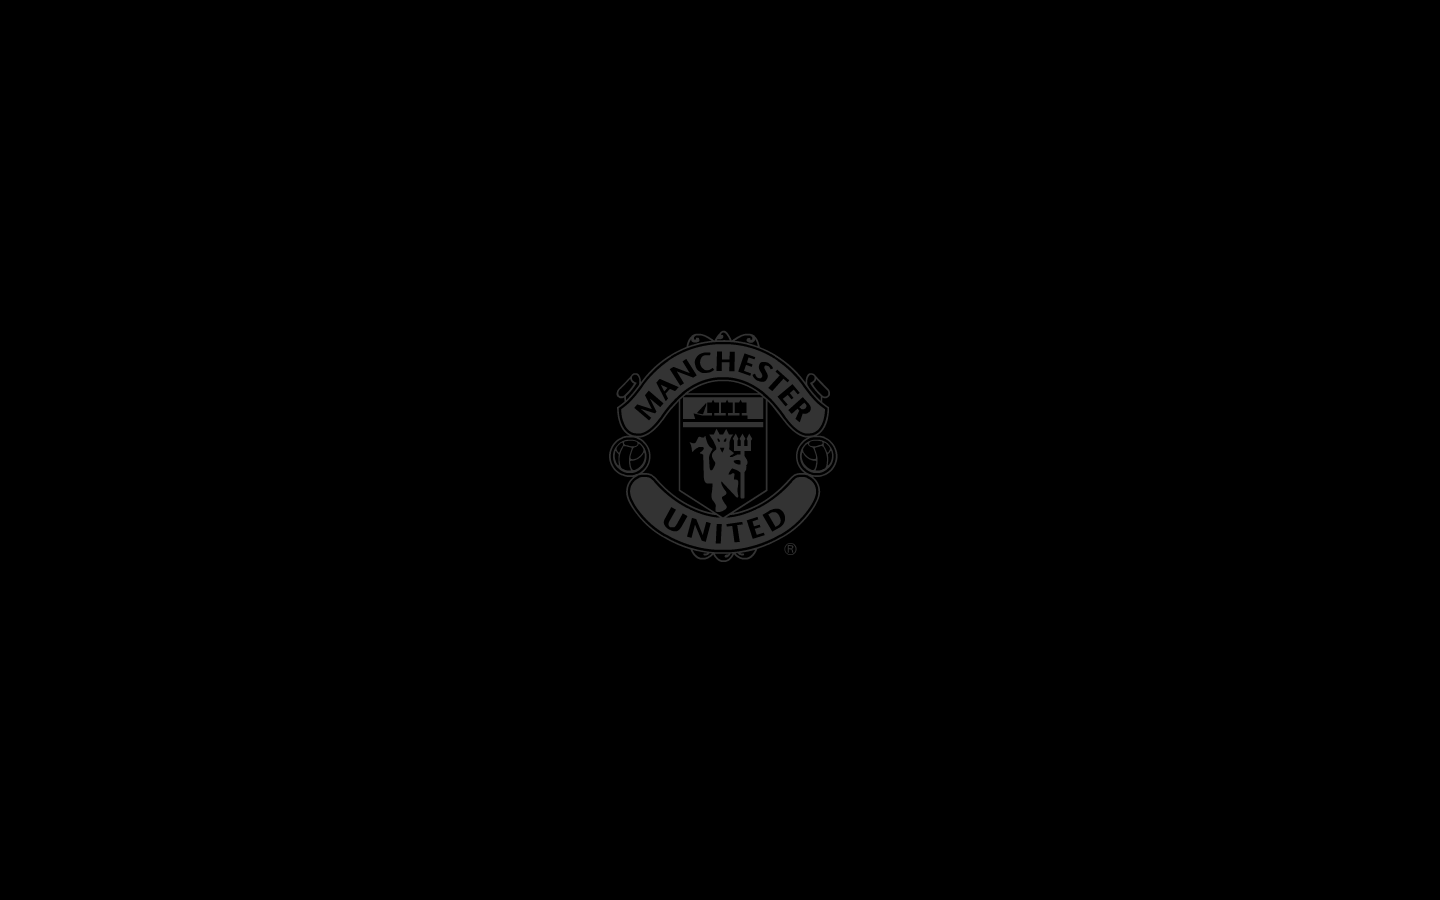 Manchester United Logo hd wallpapers ›› Page 0